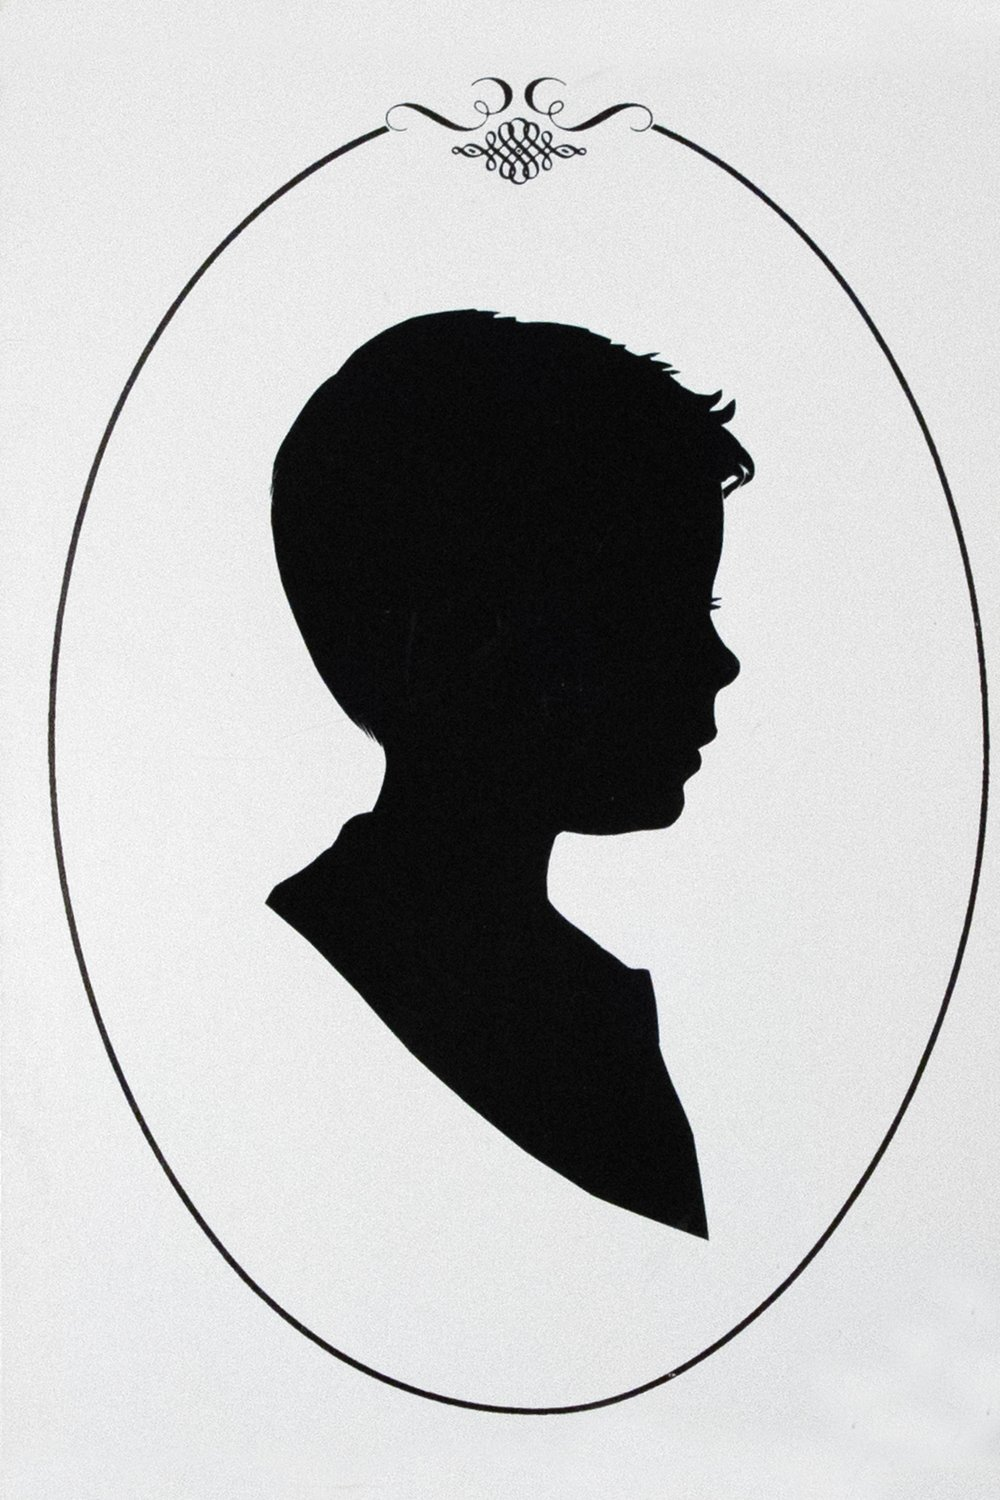 My son's silhouette from around 13 years ago